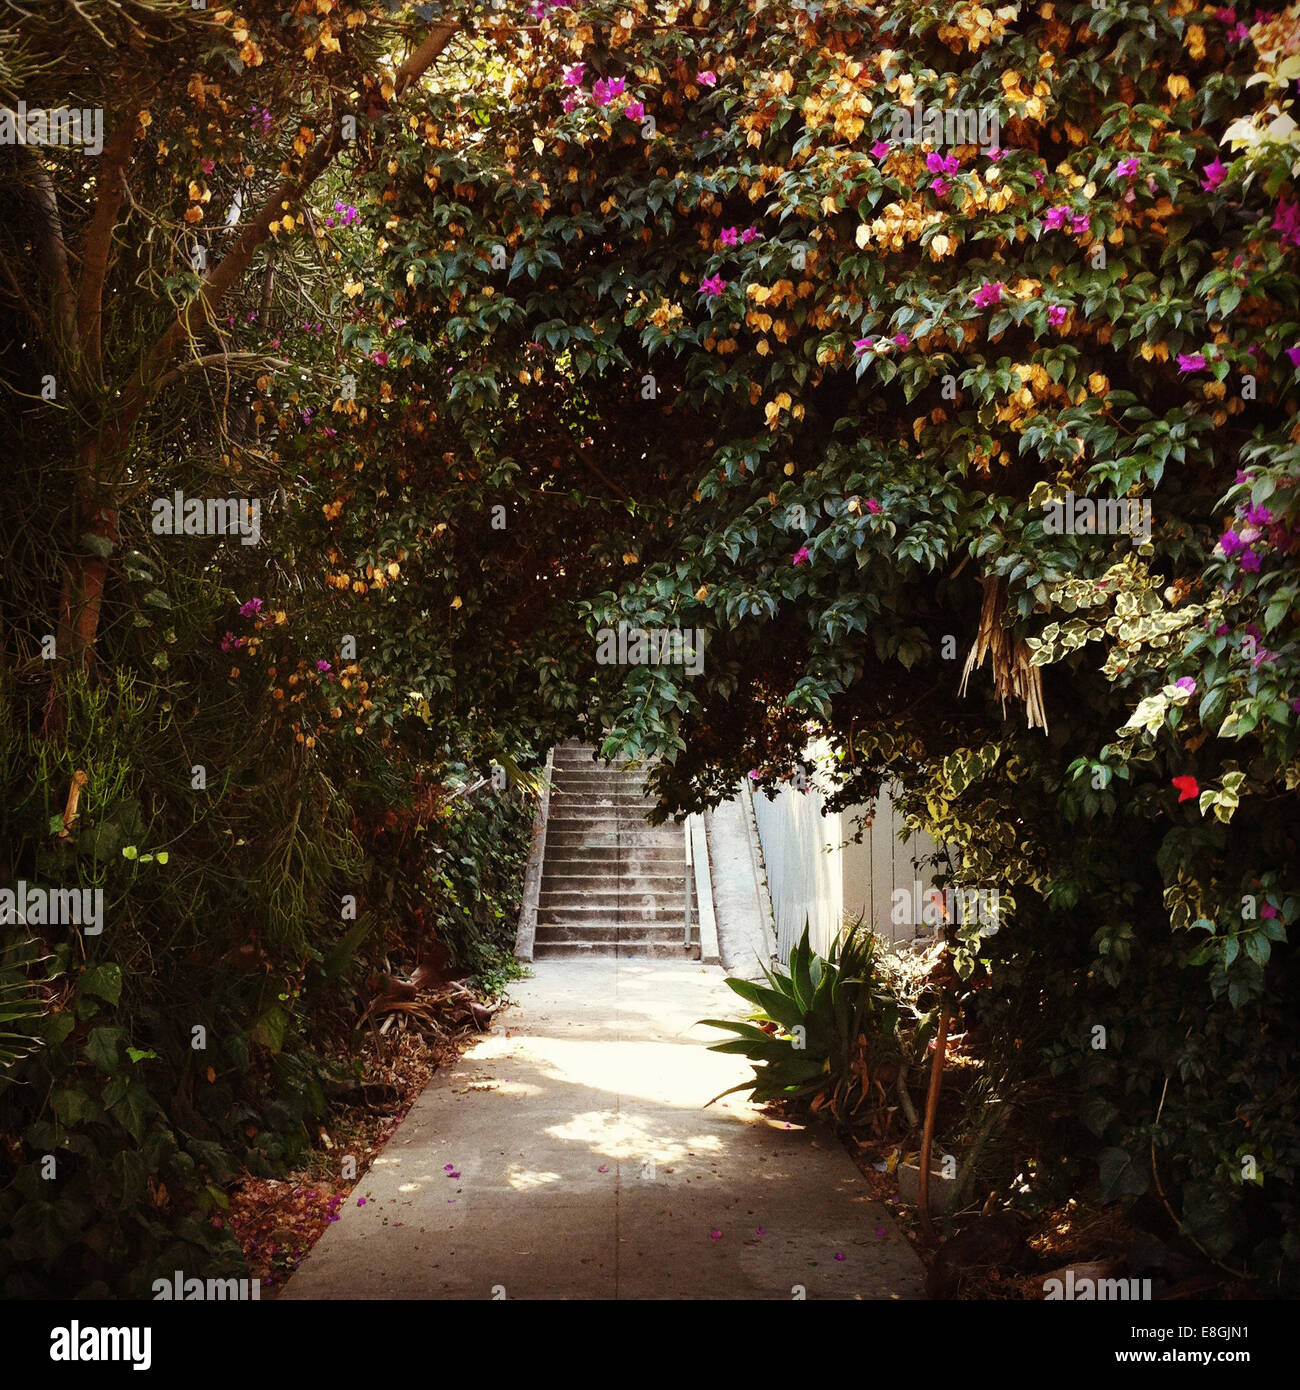 Large green shrub over concrete path leading to steps - Stock Image